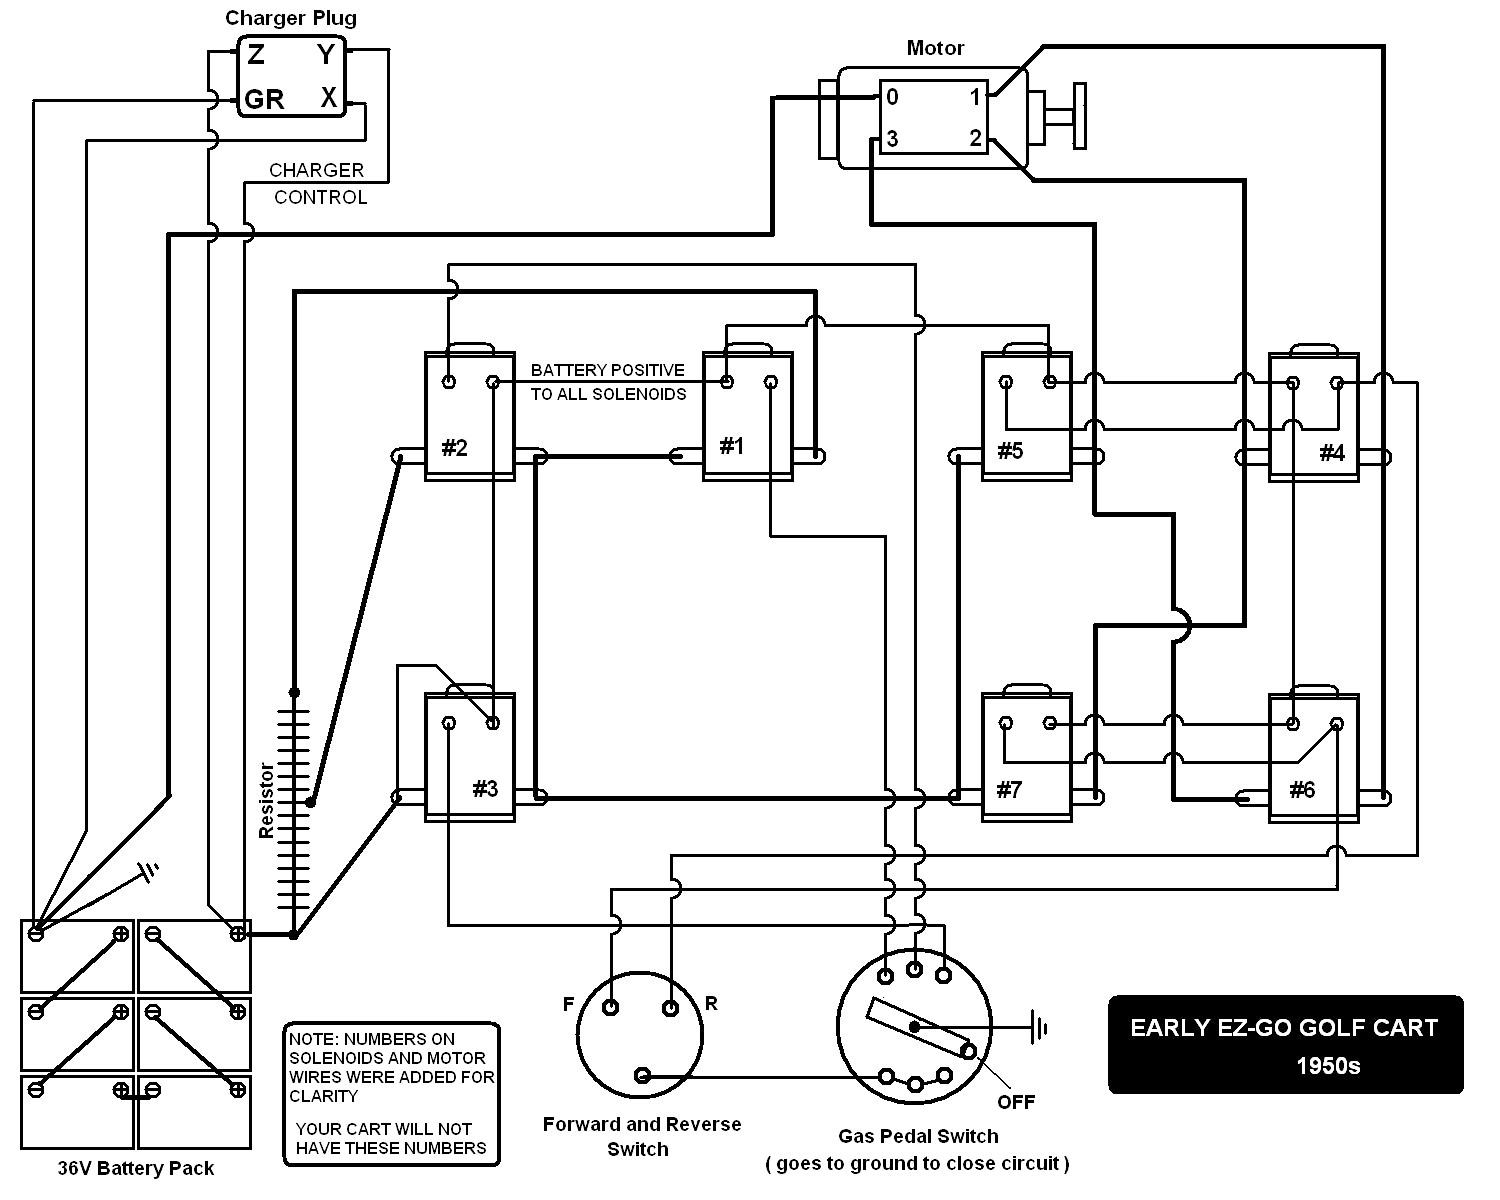 wiring diagram for a golf cart wiring diagram fascinating Easy for a Golf Cart Wiring Diagram